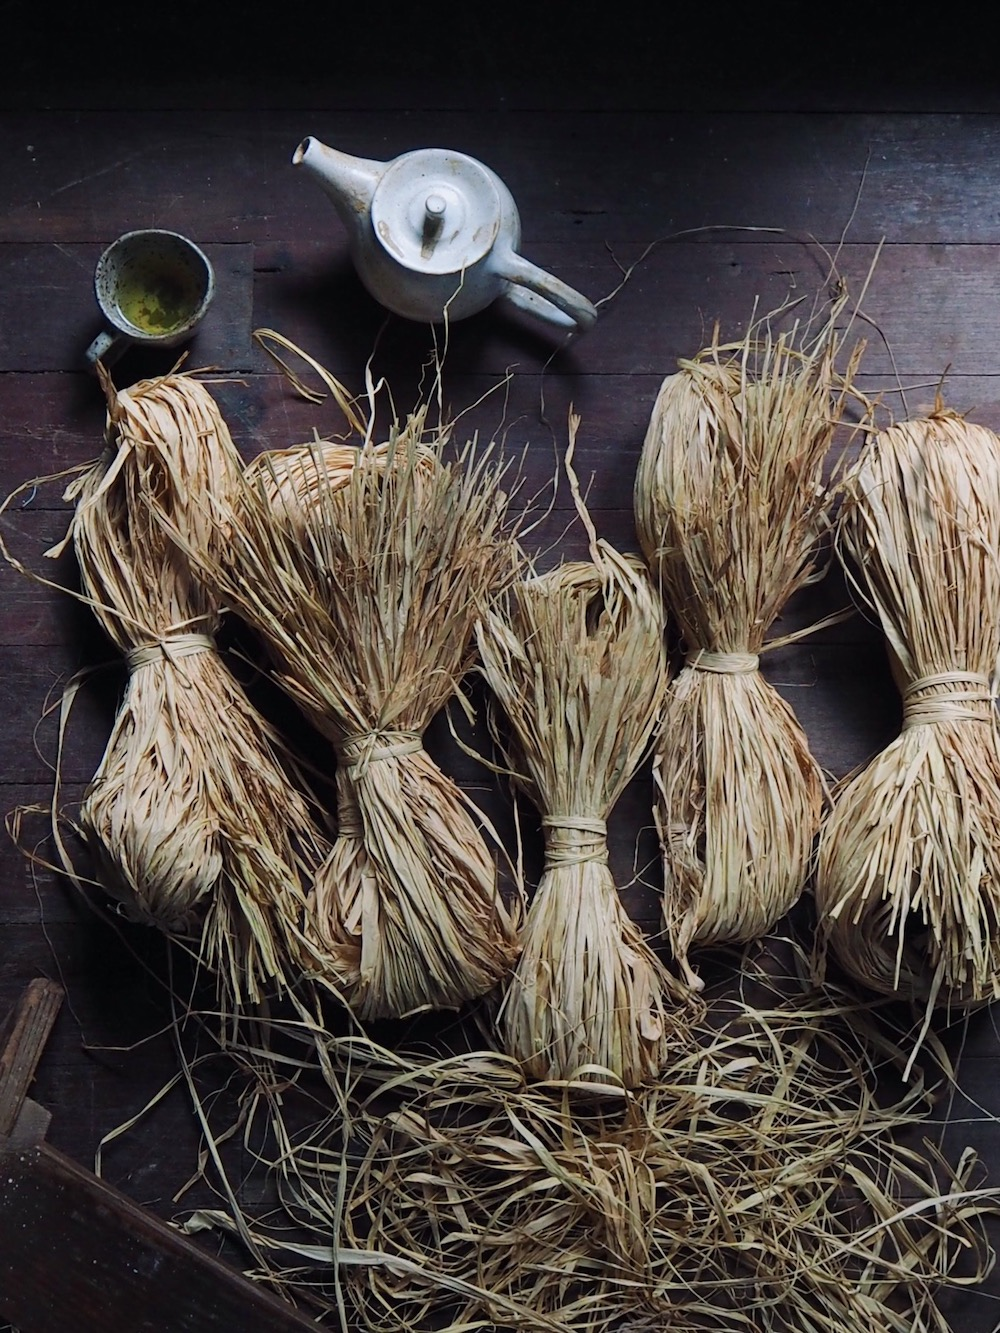 petalplum blog how to keep raffia tidy for basket weaving.jpg